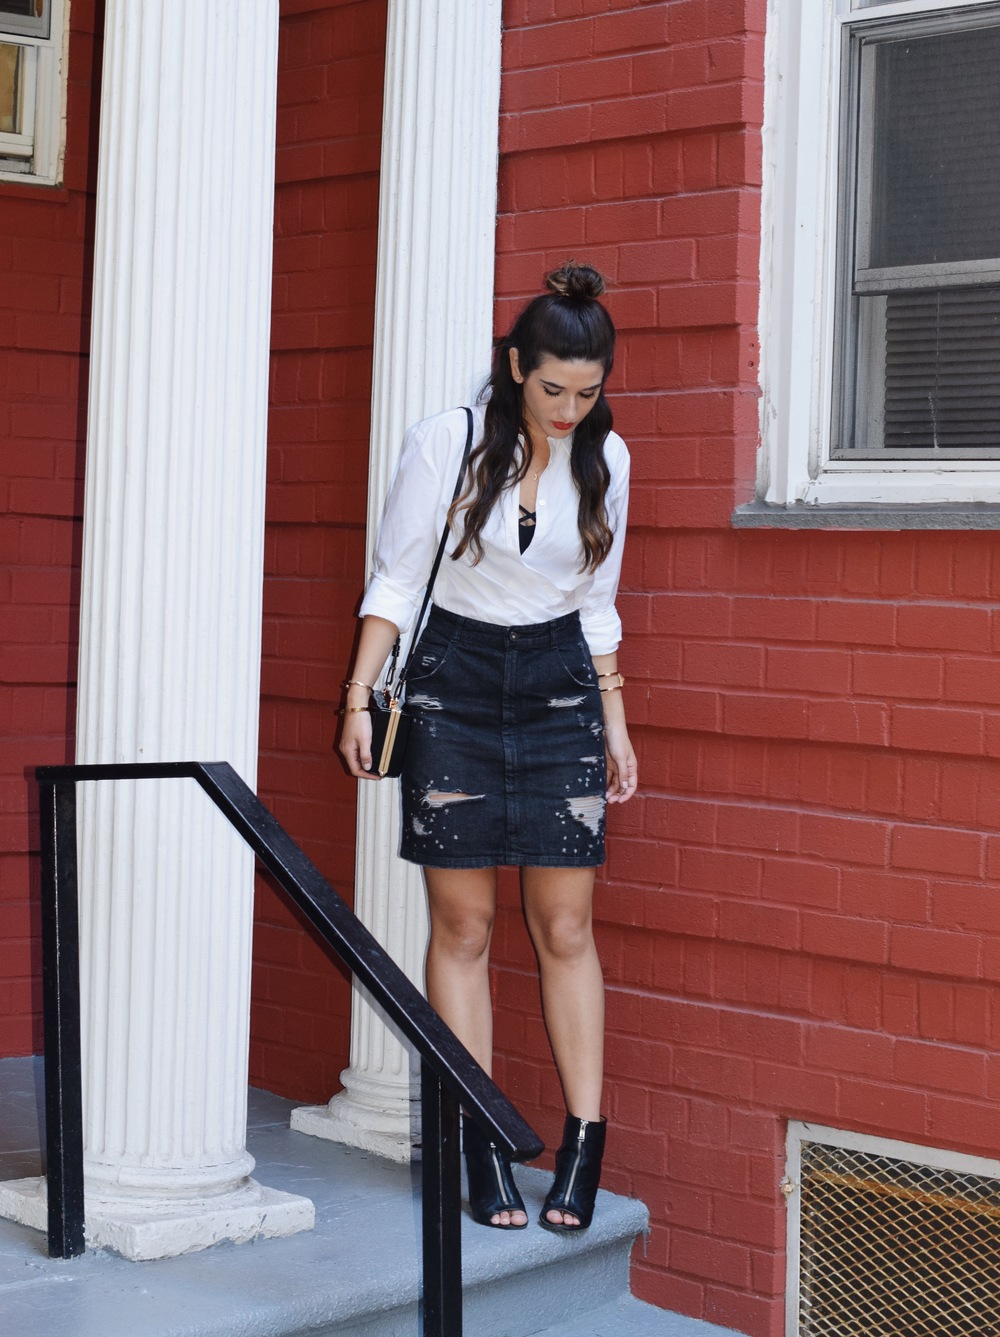 Coco & Marie Moon Necklace Giveaway Louboutins & Love Fashion Blog Esther Santer NYC Street Style Blogger Lifestyle Topknot Bun Denim Ripped Jean Skirt White Button Down Zara Black Box Clutch Bag Nordstrom Booties Bralette Brandy Melville Gold Jewelry.JPG